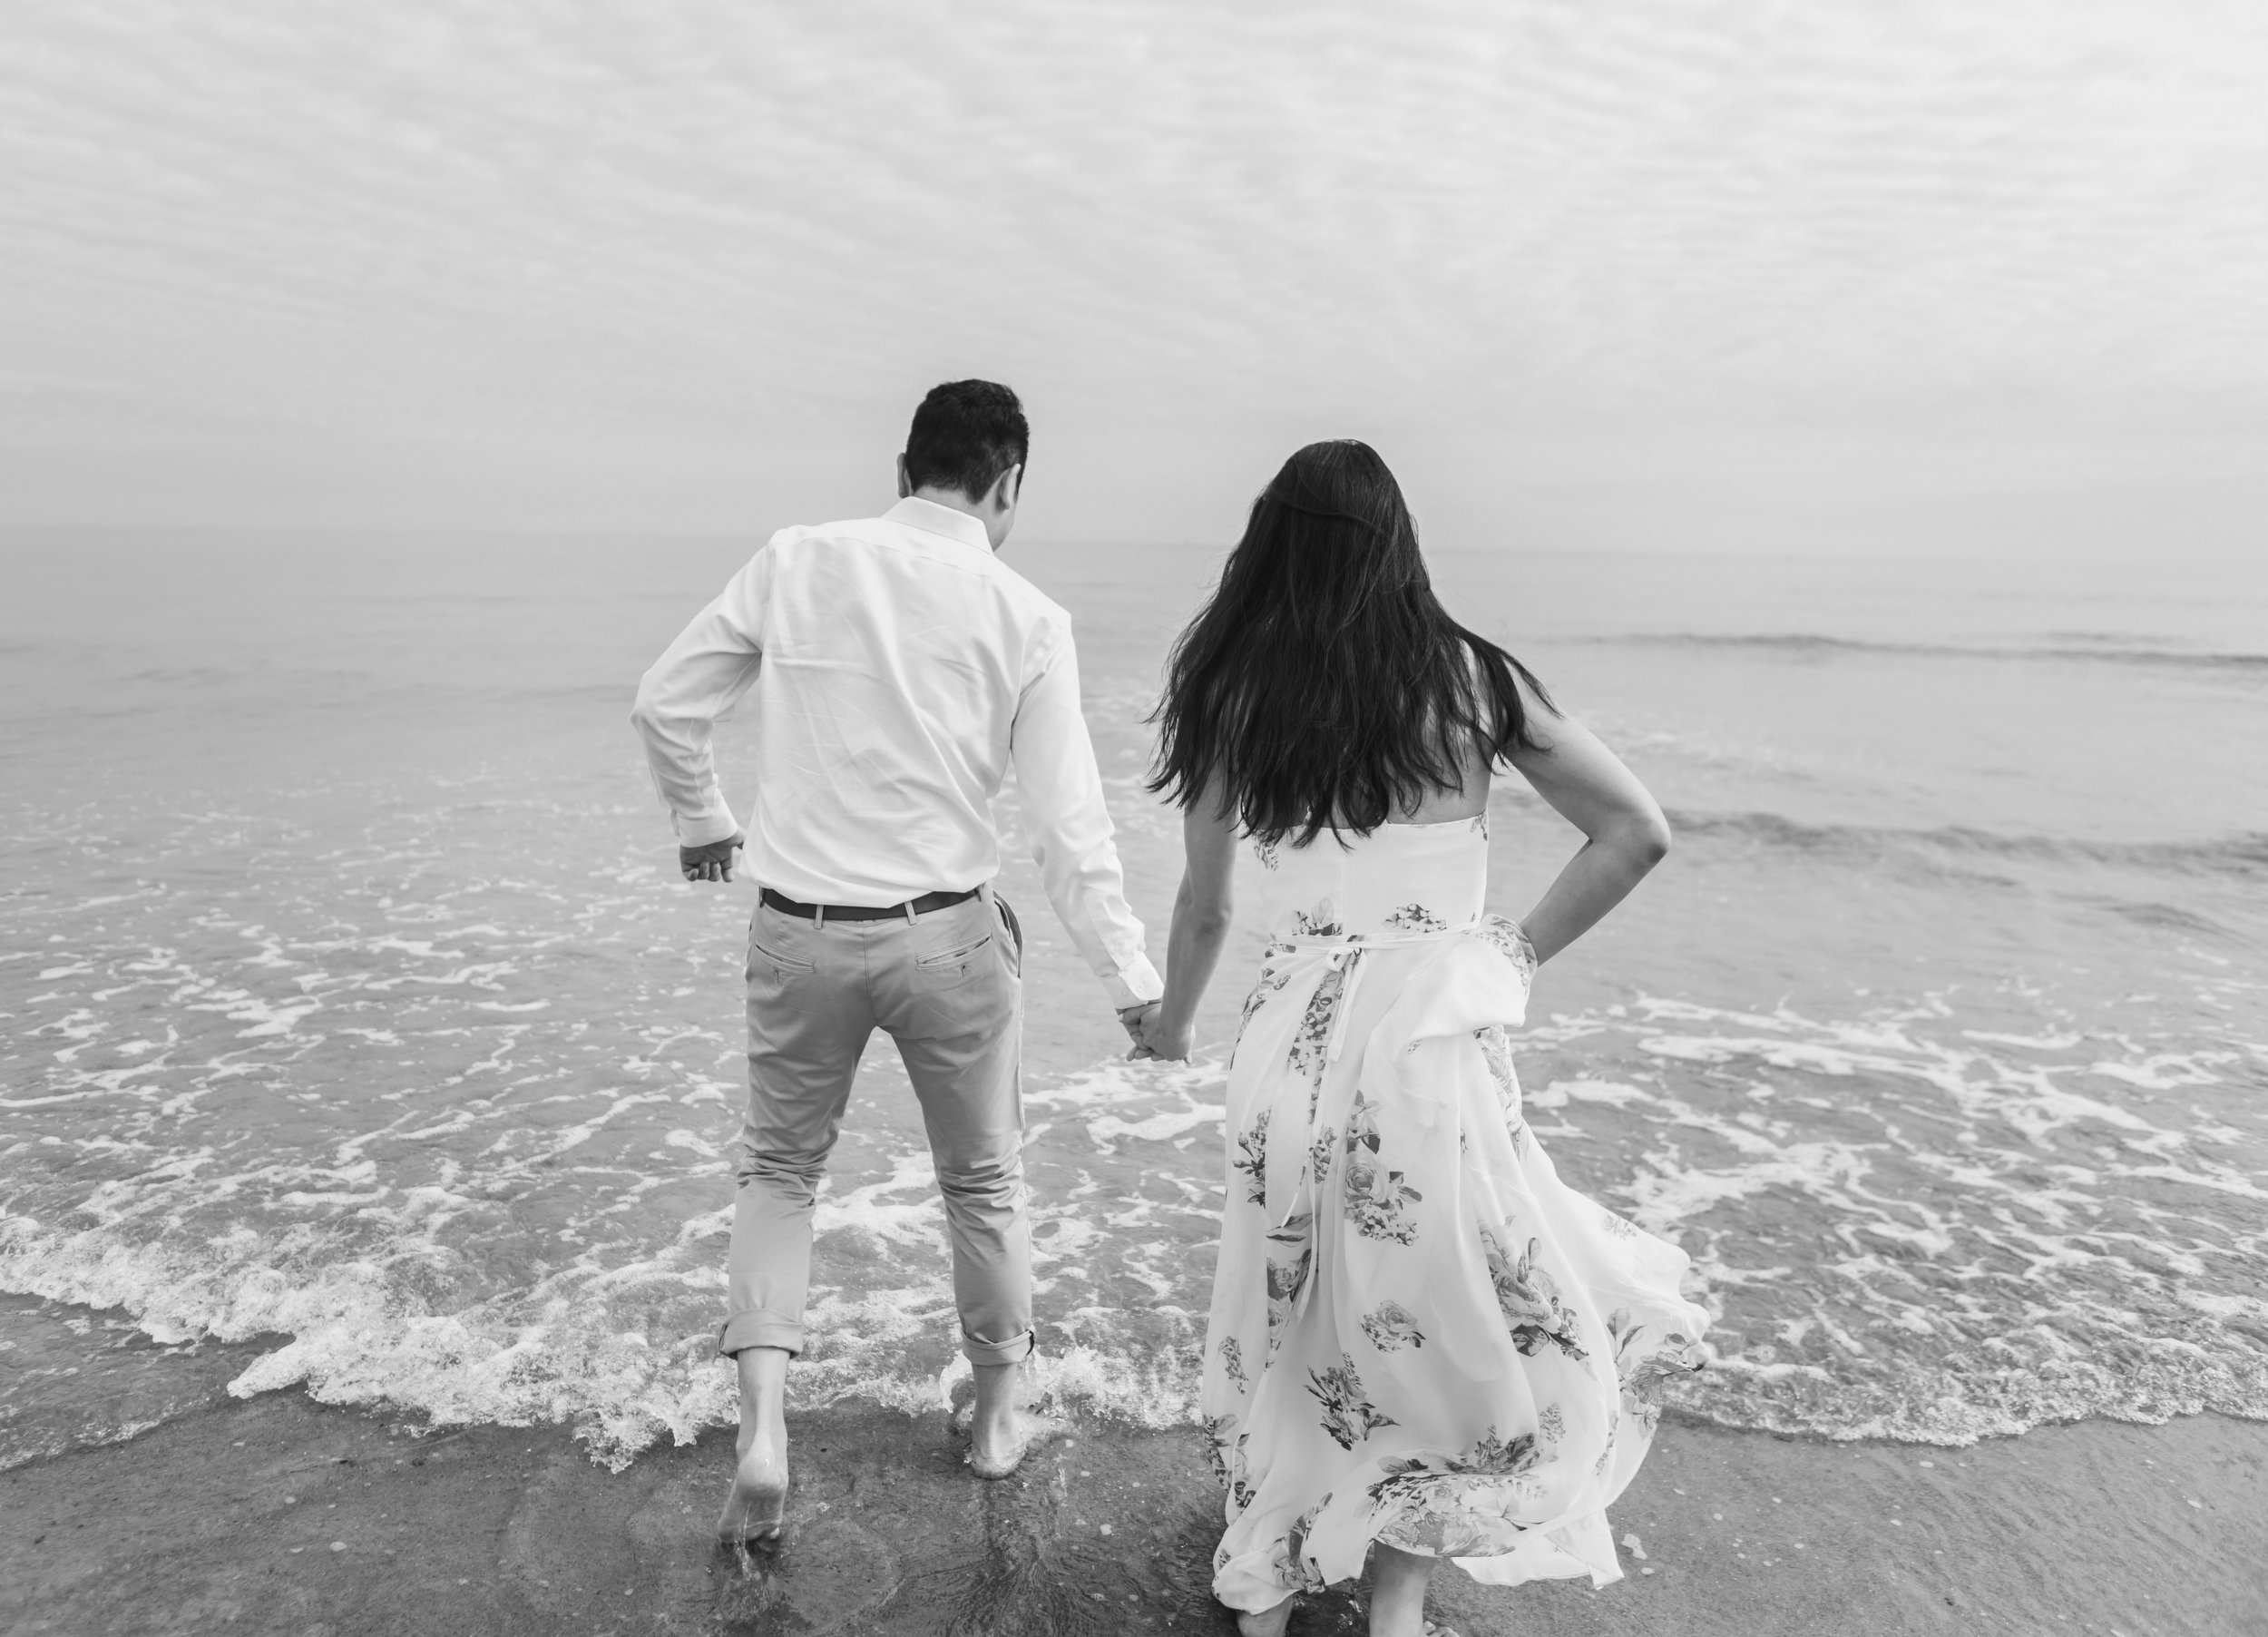 Crane-Beach-Engagement-Wedding-Lena-Mirisola-12.JPG